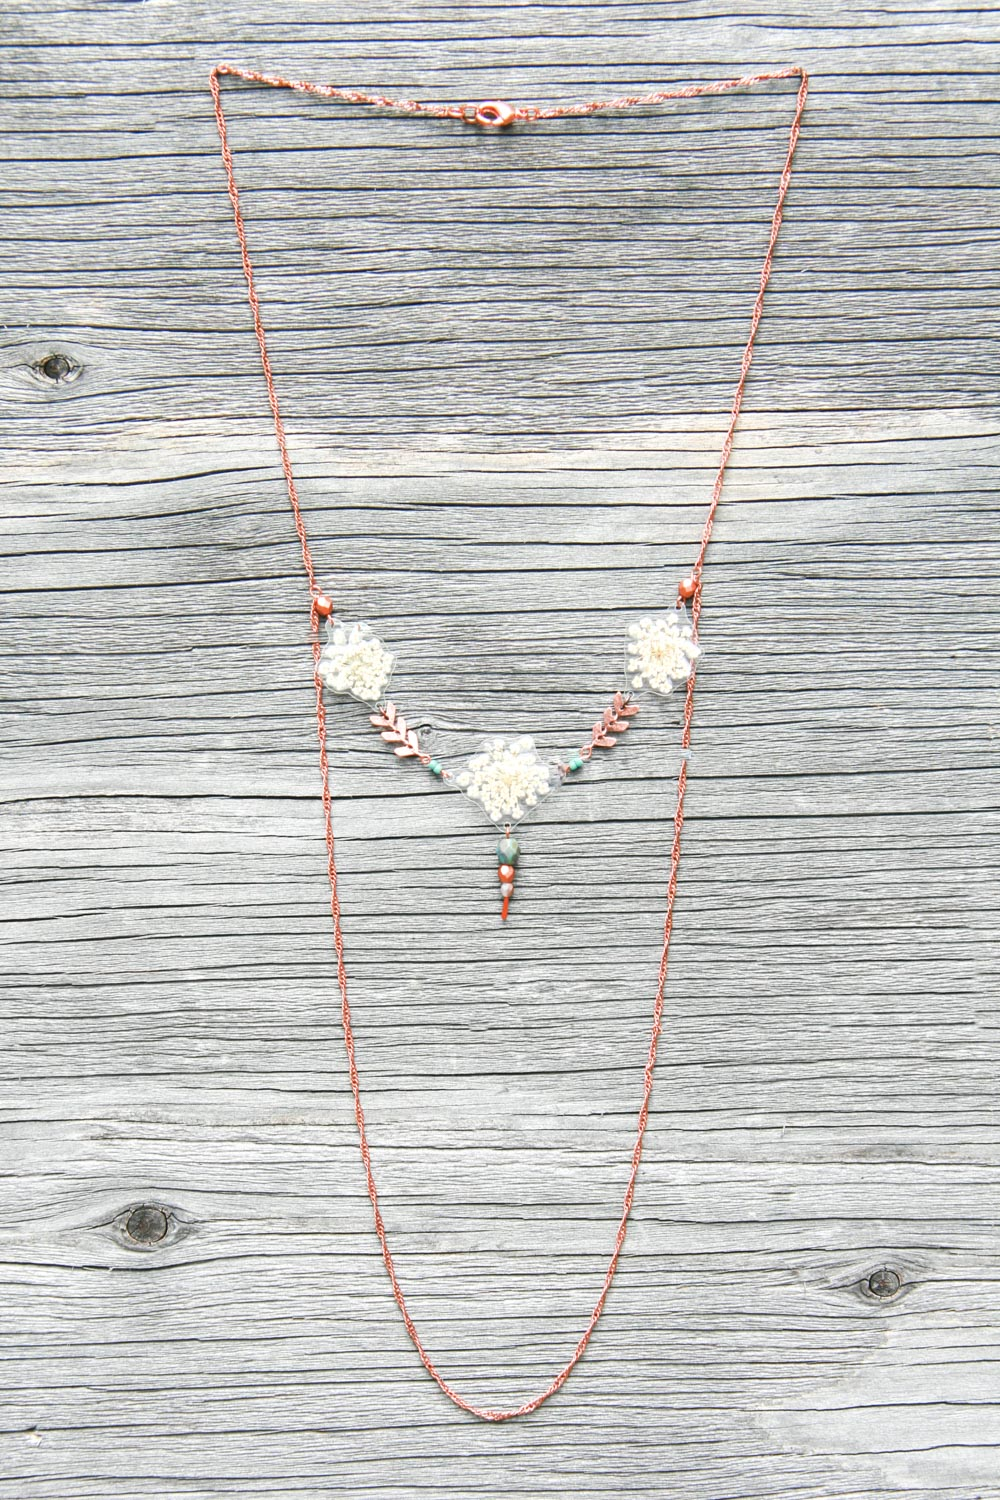 White Queen Anne's Lace Pressed Petal Necklace with Glass & Copper Beads